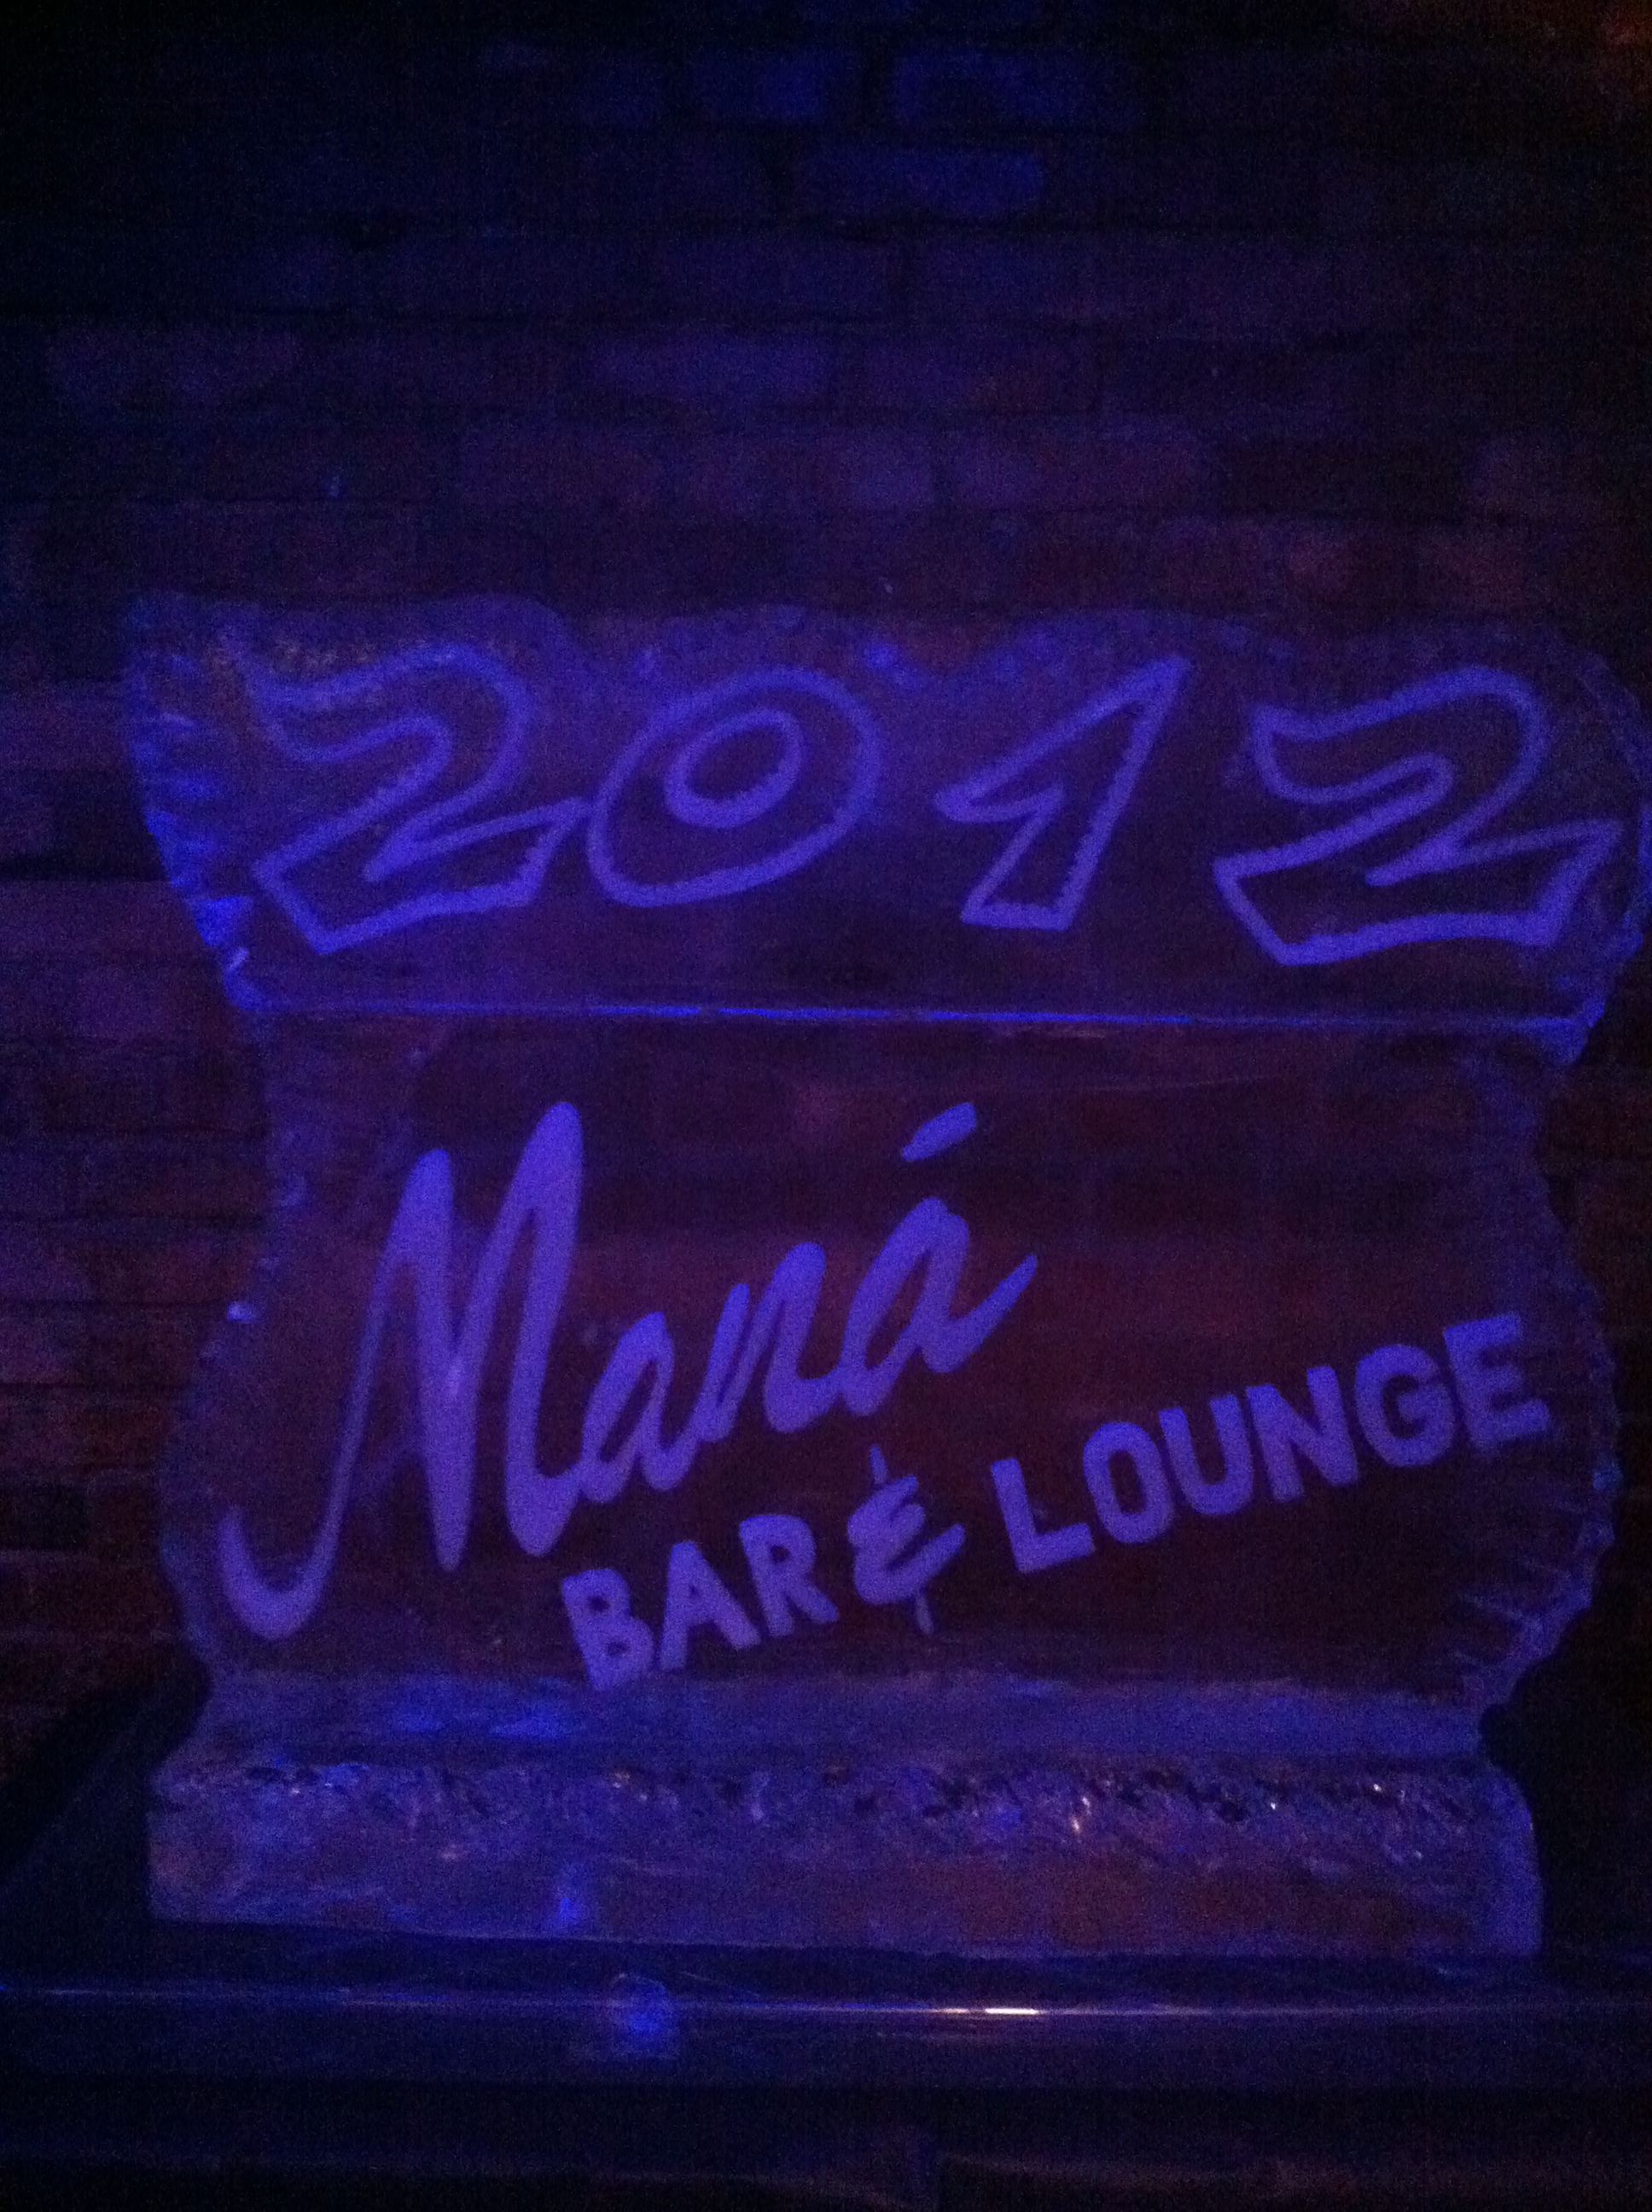 2012+#7+-+Mana+Bar+Lounge.jpg